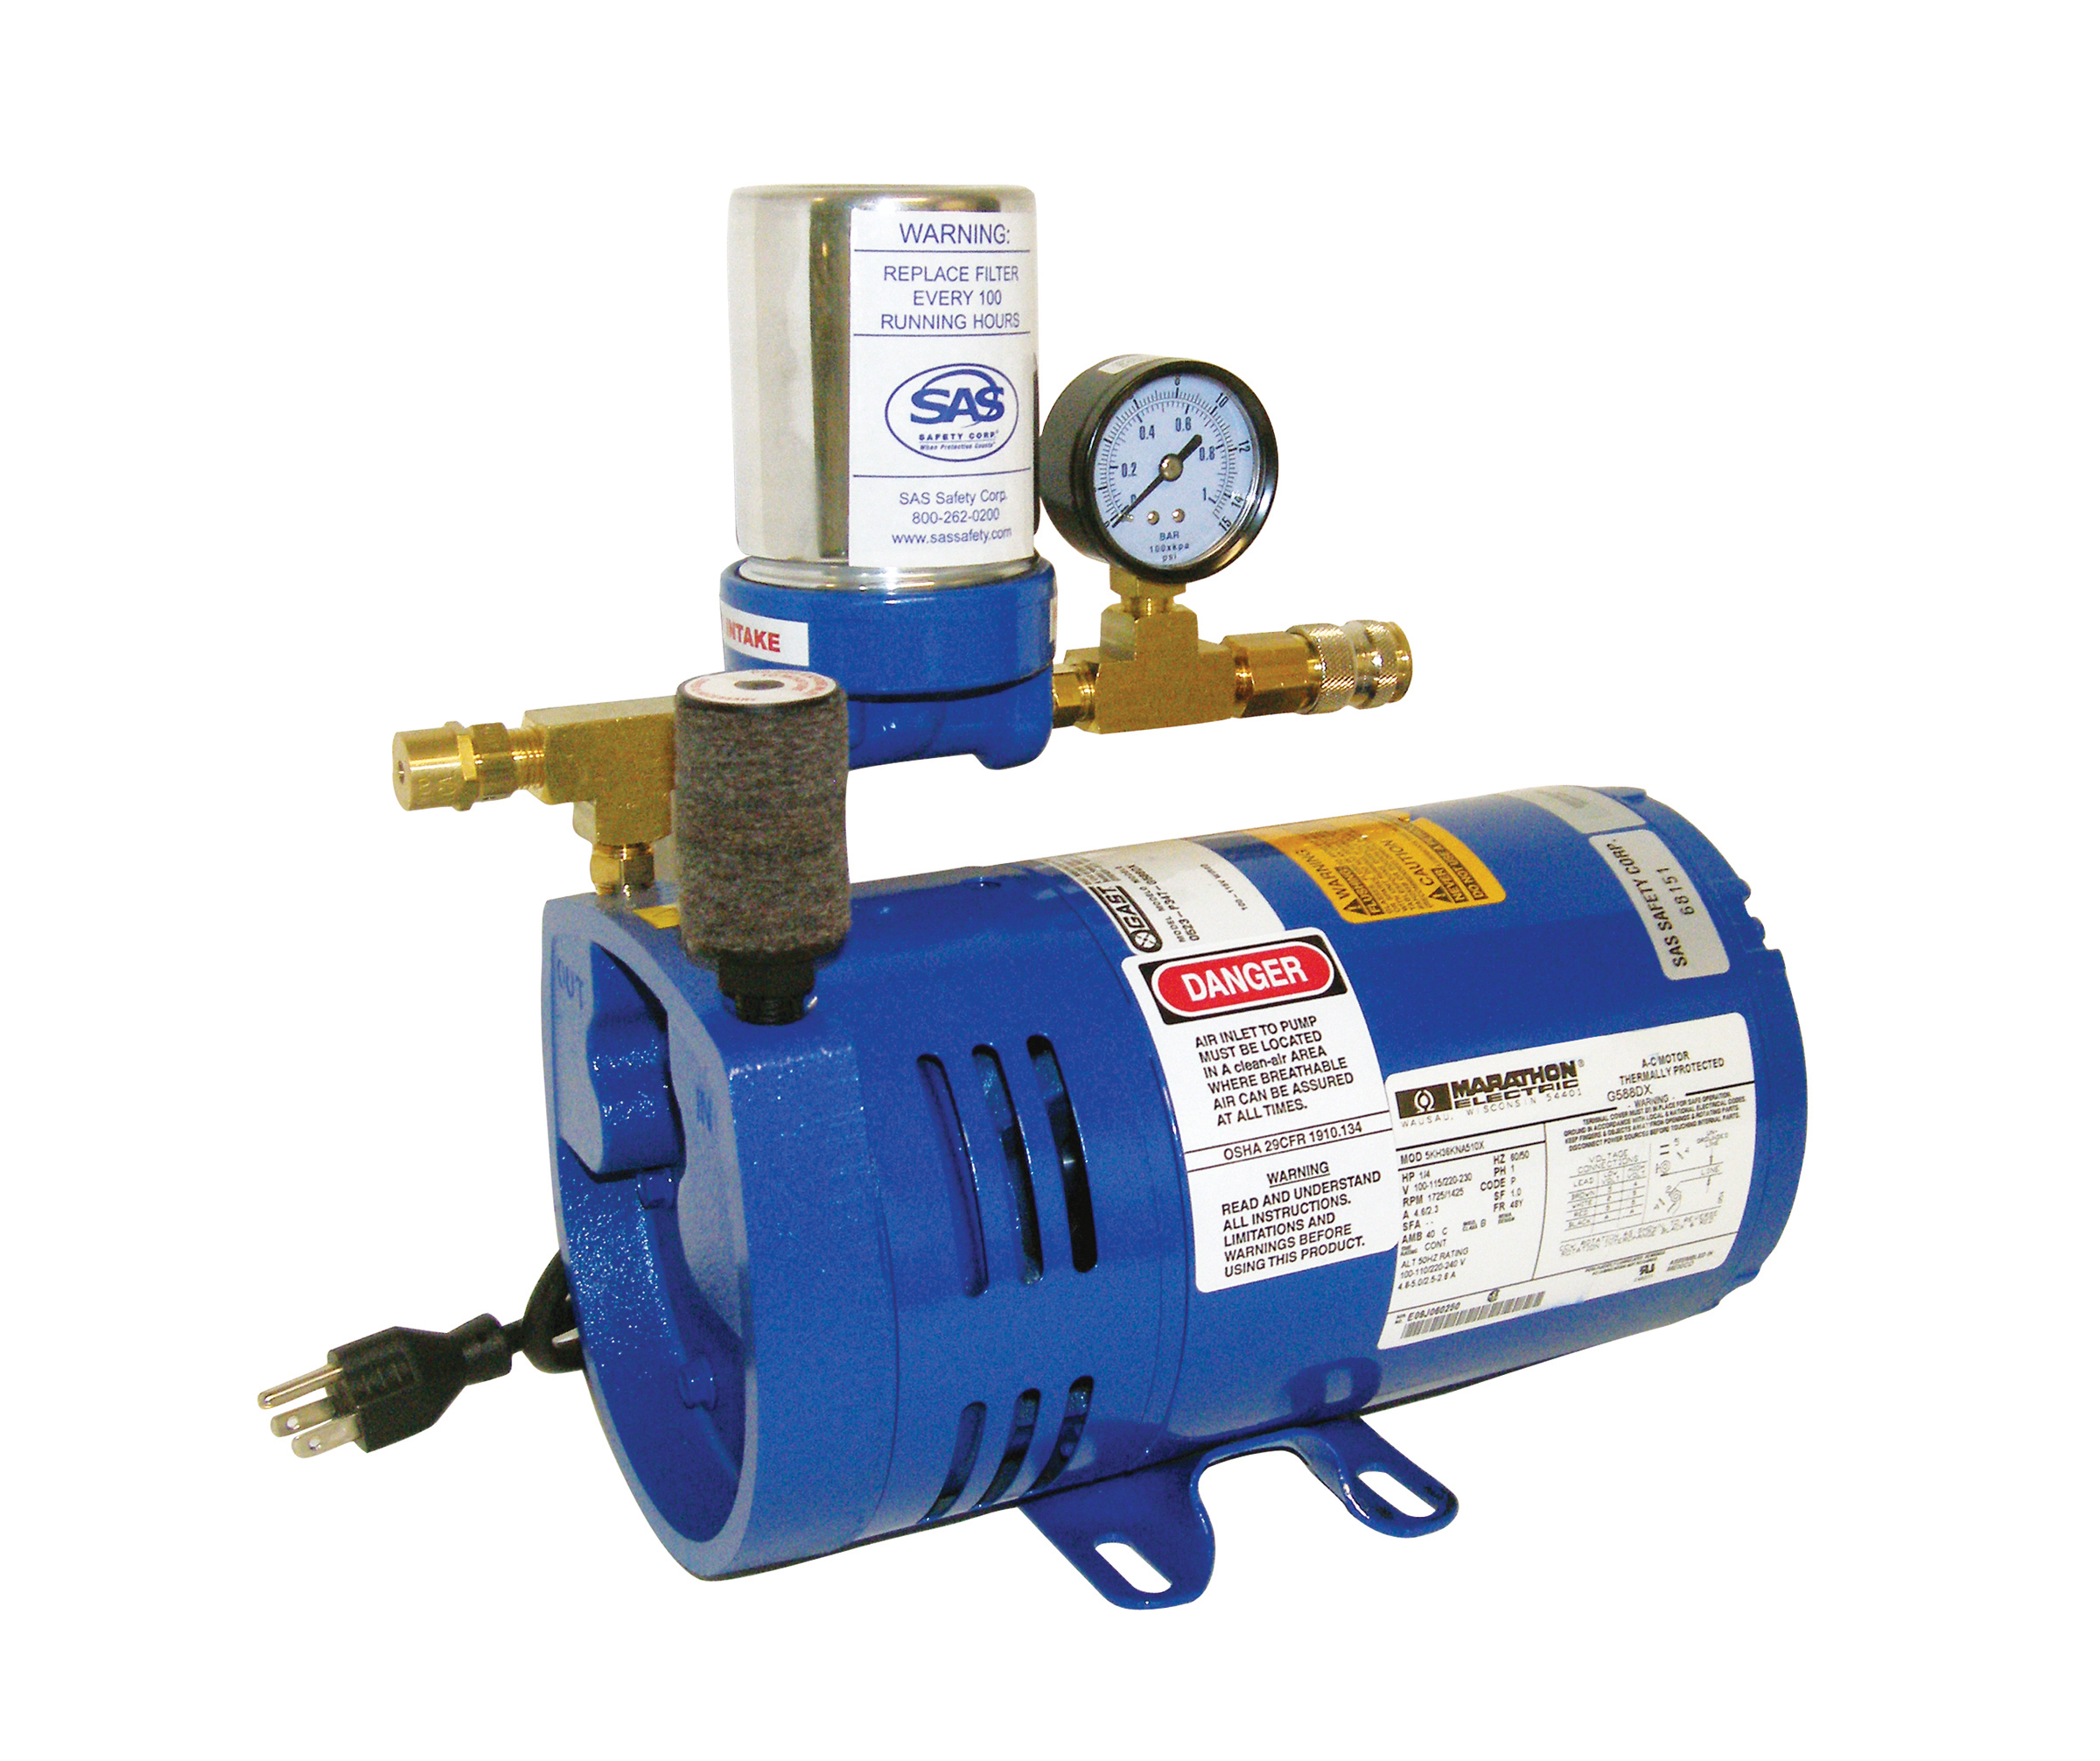 Replacement Parts for Oil-Less Air Pumps